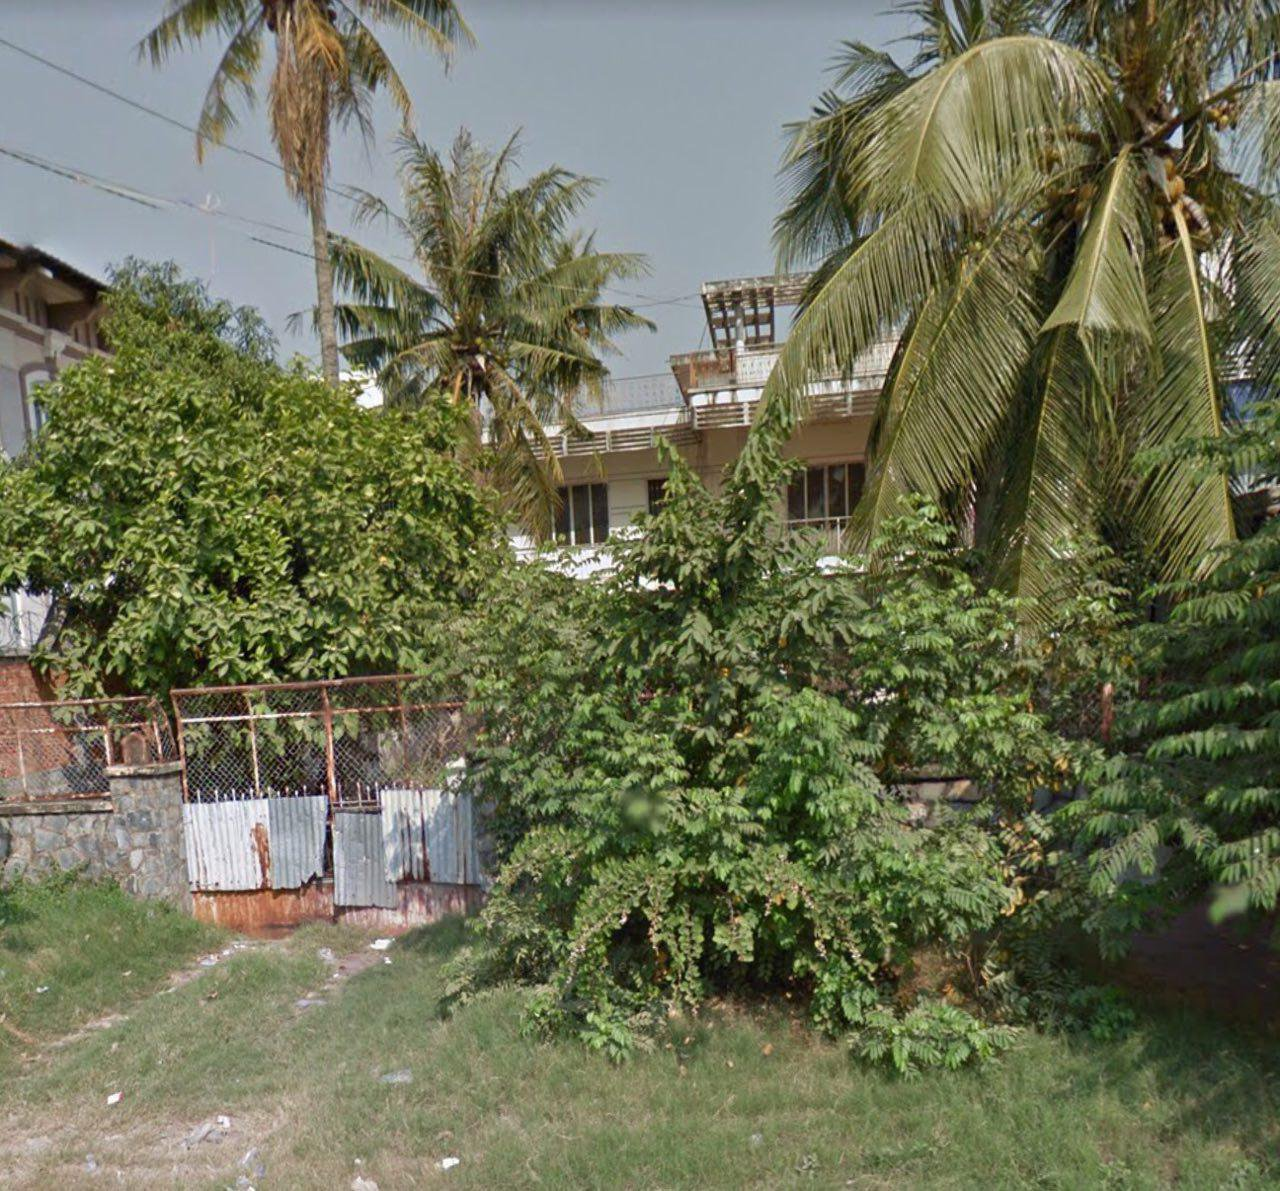 Land for sale near TK($3800000)